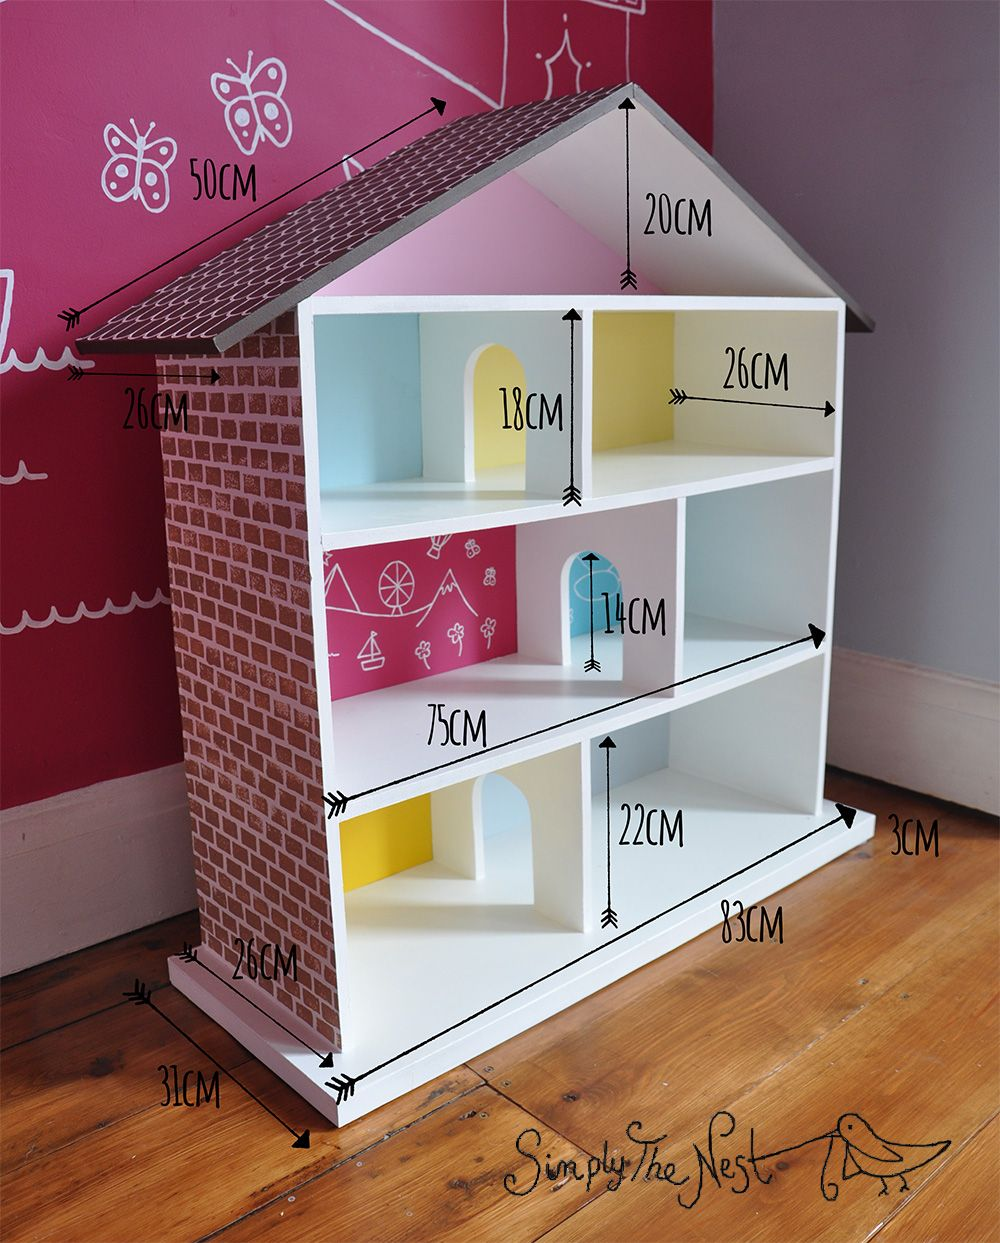 DIY Casa de Bonecas | Diy dollhouse, Nest and Blog